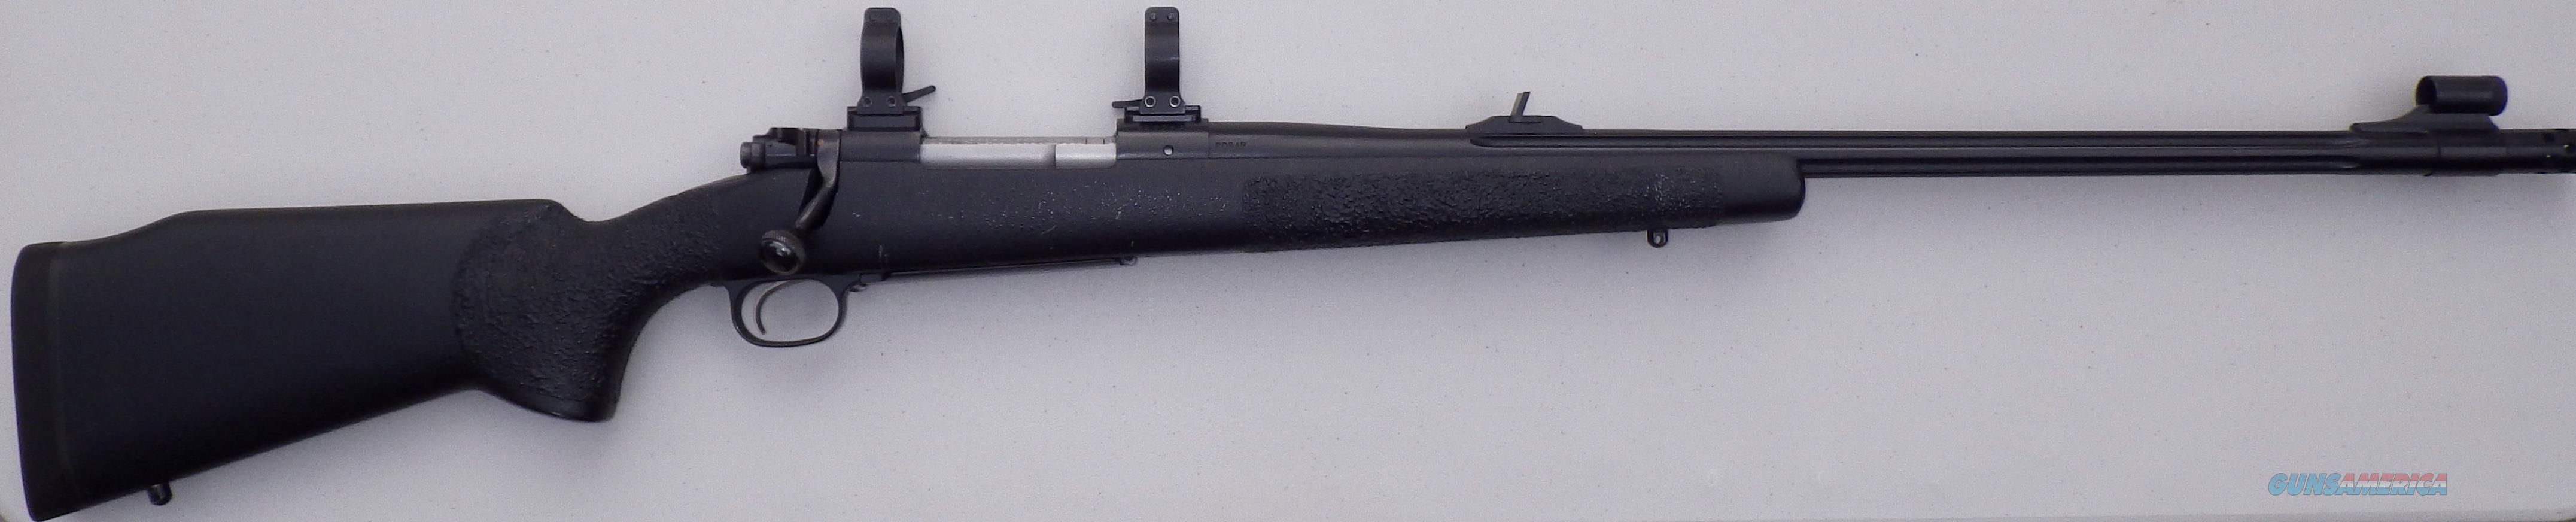 Ramp Banded Sight Front